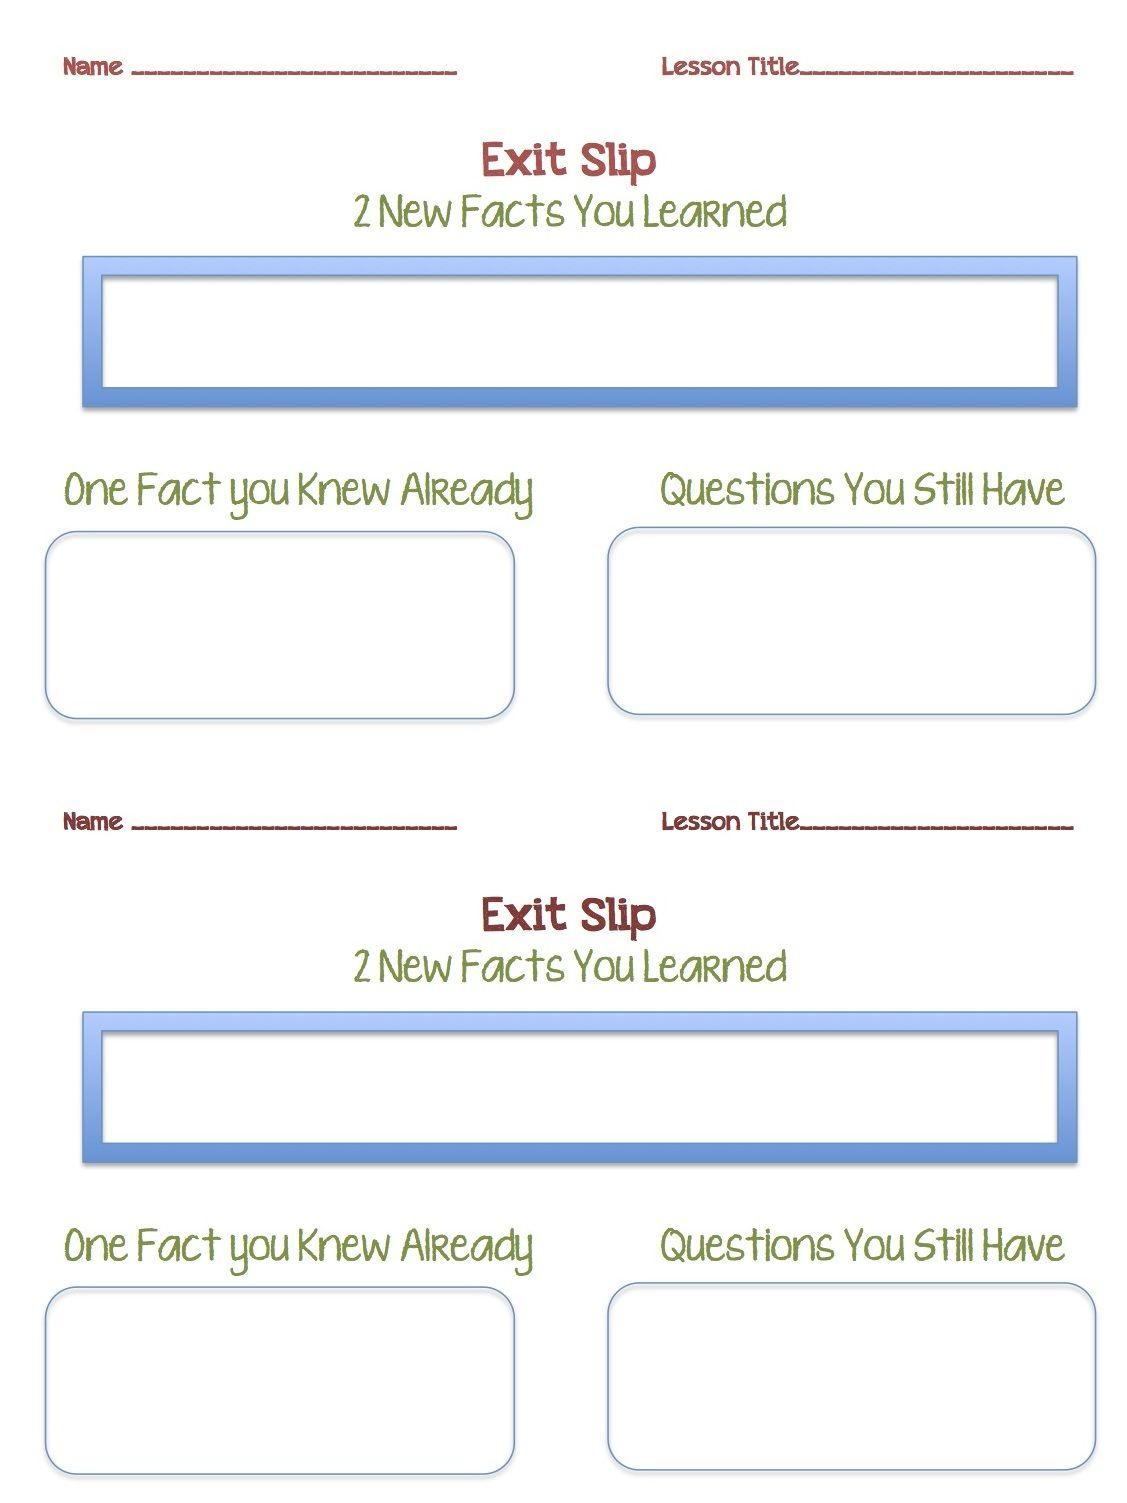 Tween Teaching Parent Contact Log And Exit Slip Sheets May Be